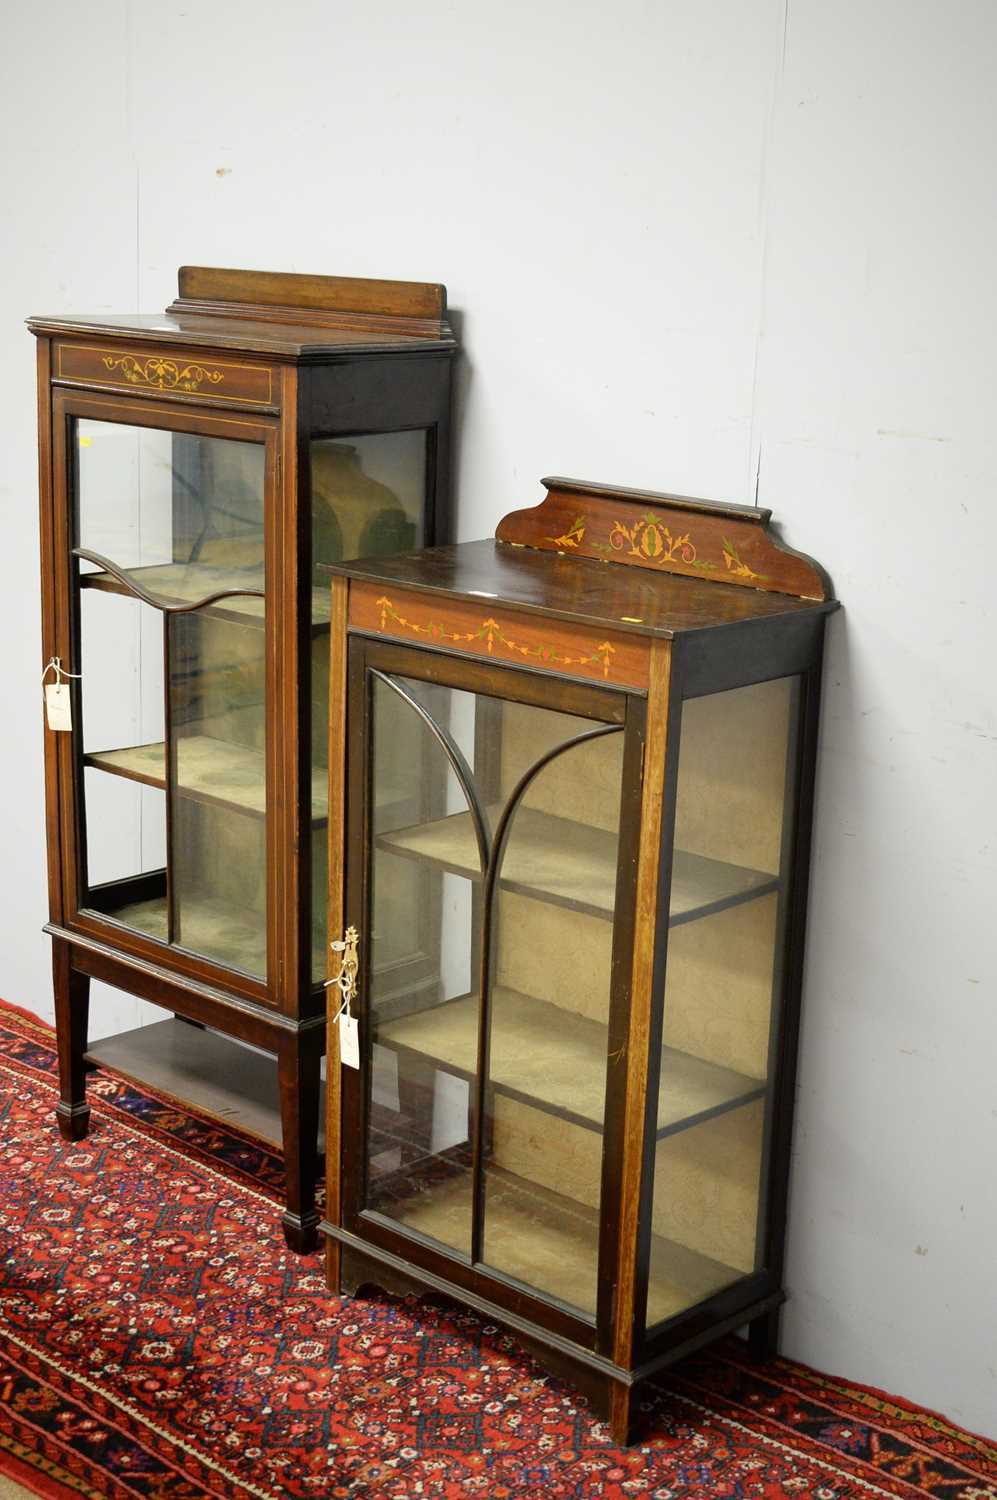 Two early 20th C display cabinets. - Image 5 of 6